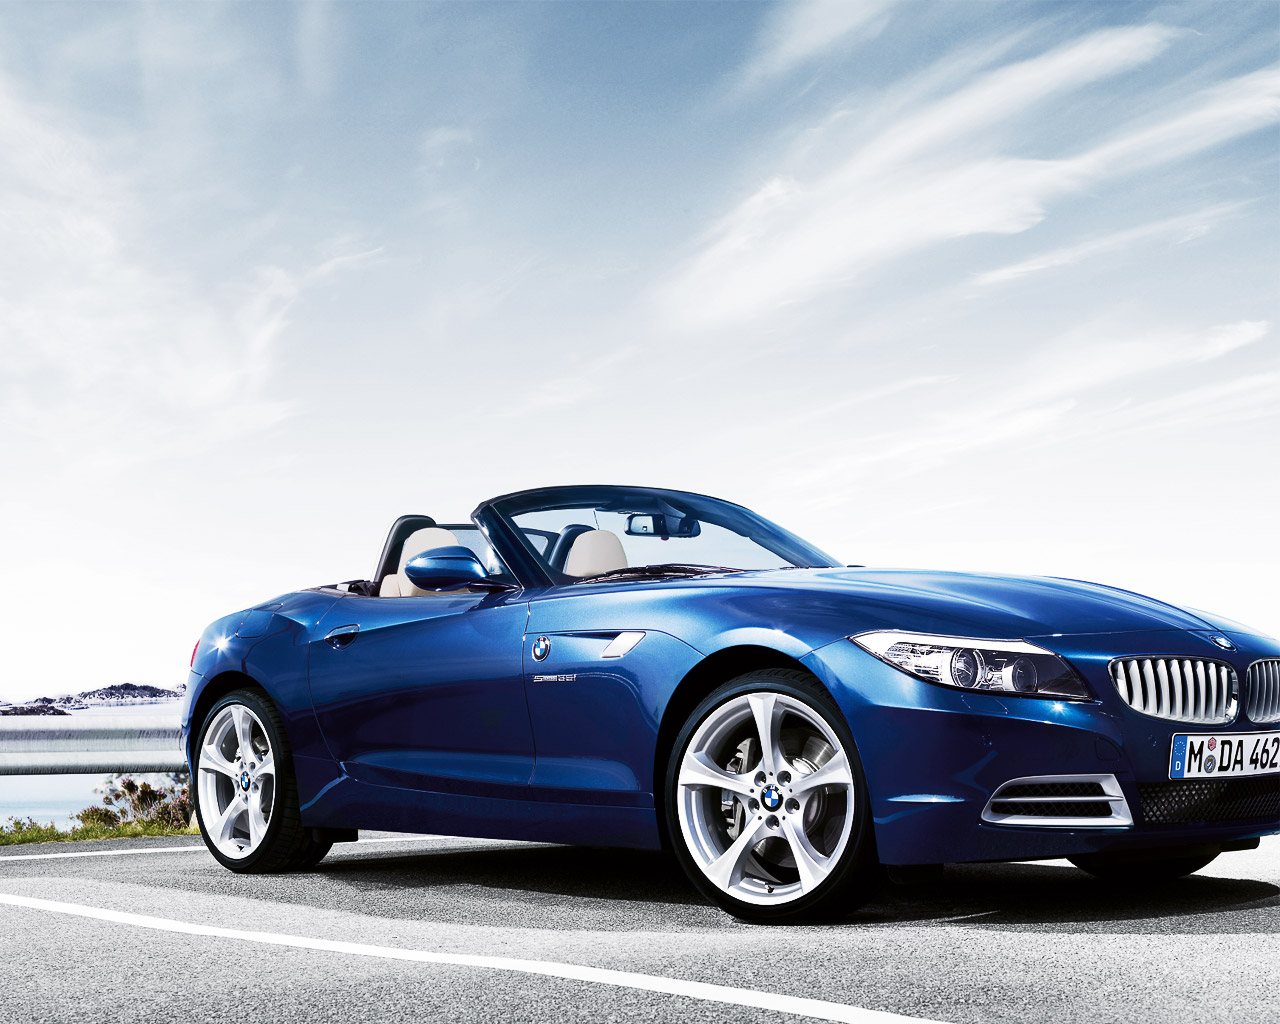 BMW Z4 2000: Review, Amazing Pictures and Images - Look at ...